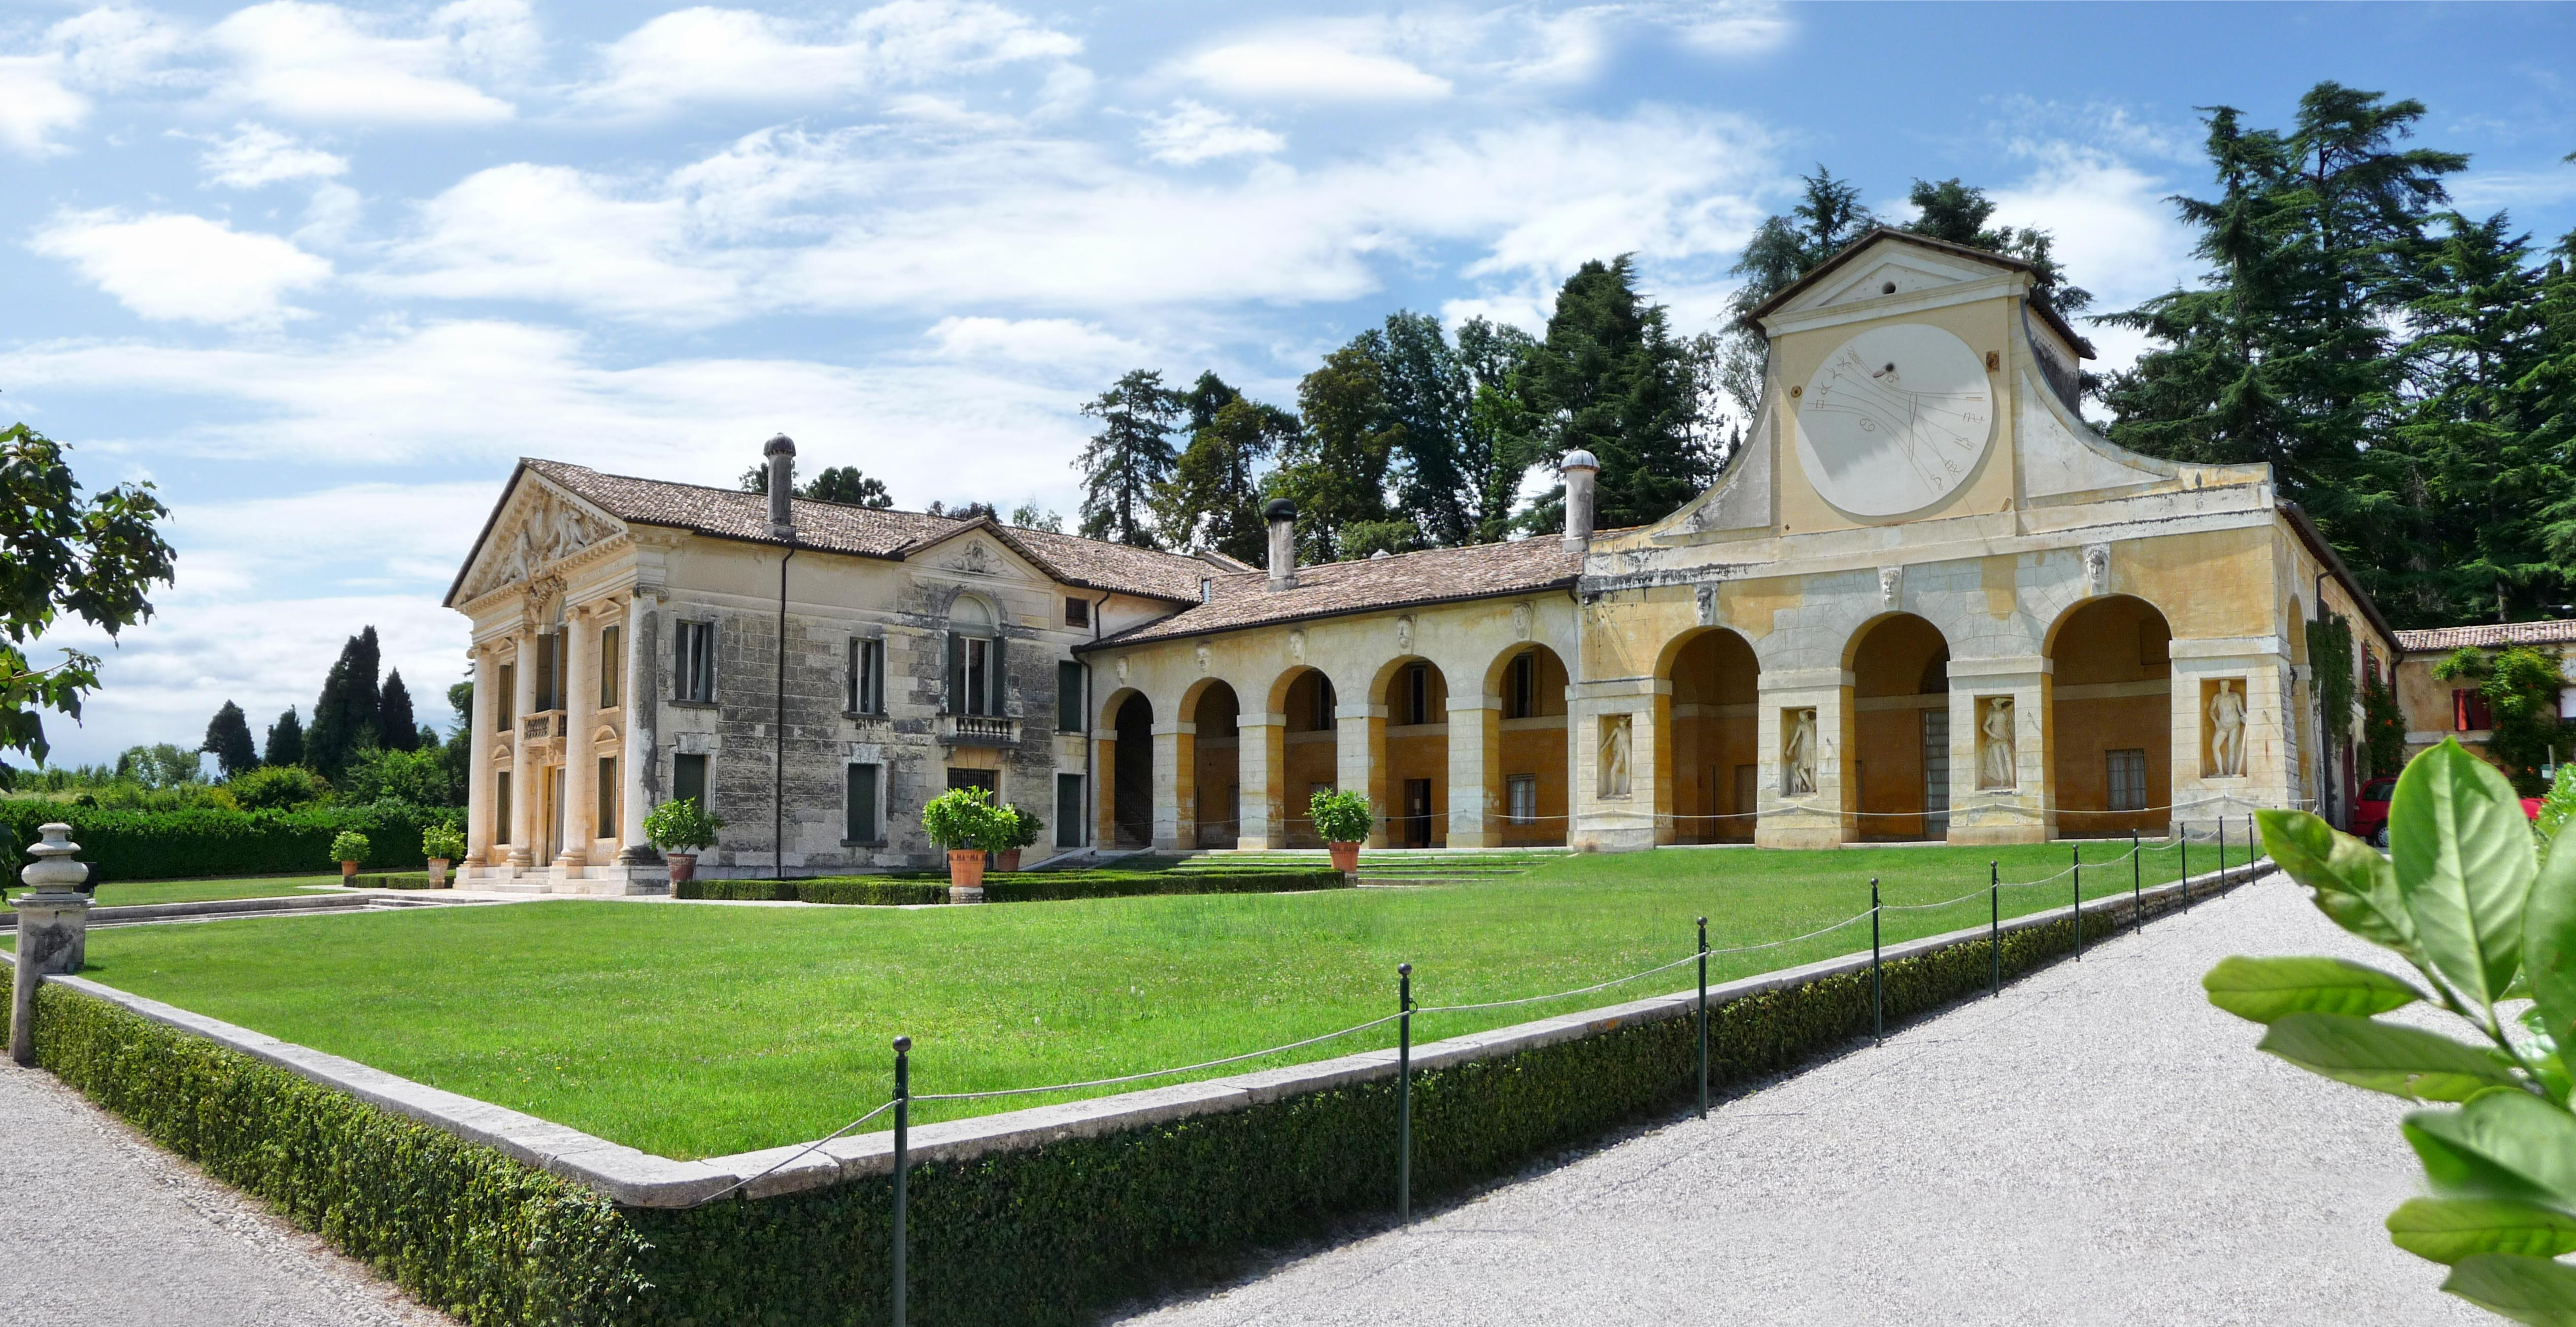 Camera Exterieur Google Home File:villa Barbaro Maser Barchesse.jpg - Wikimedia Commons